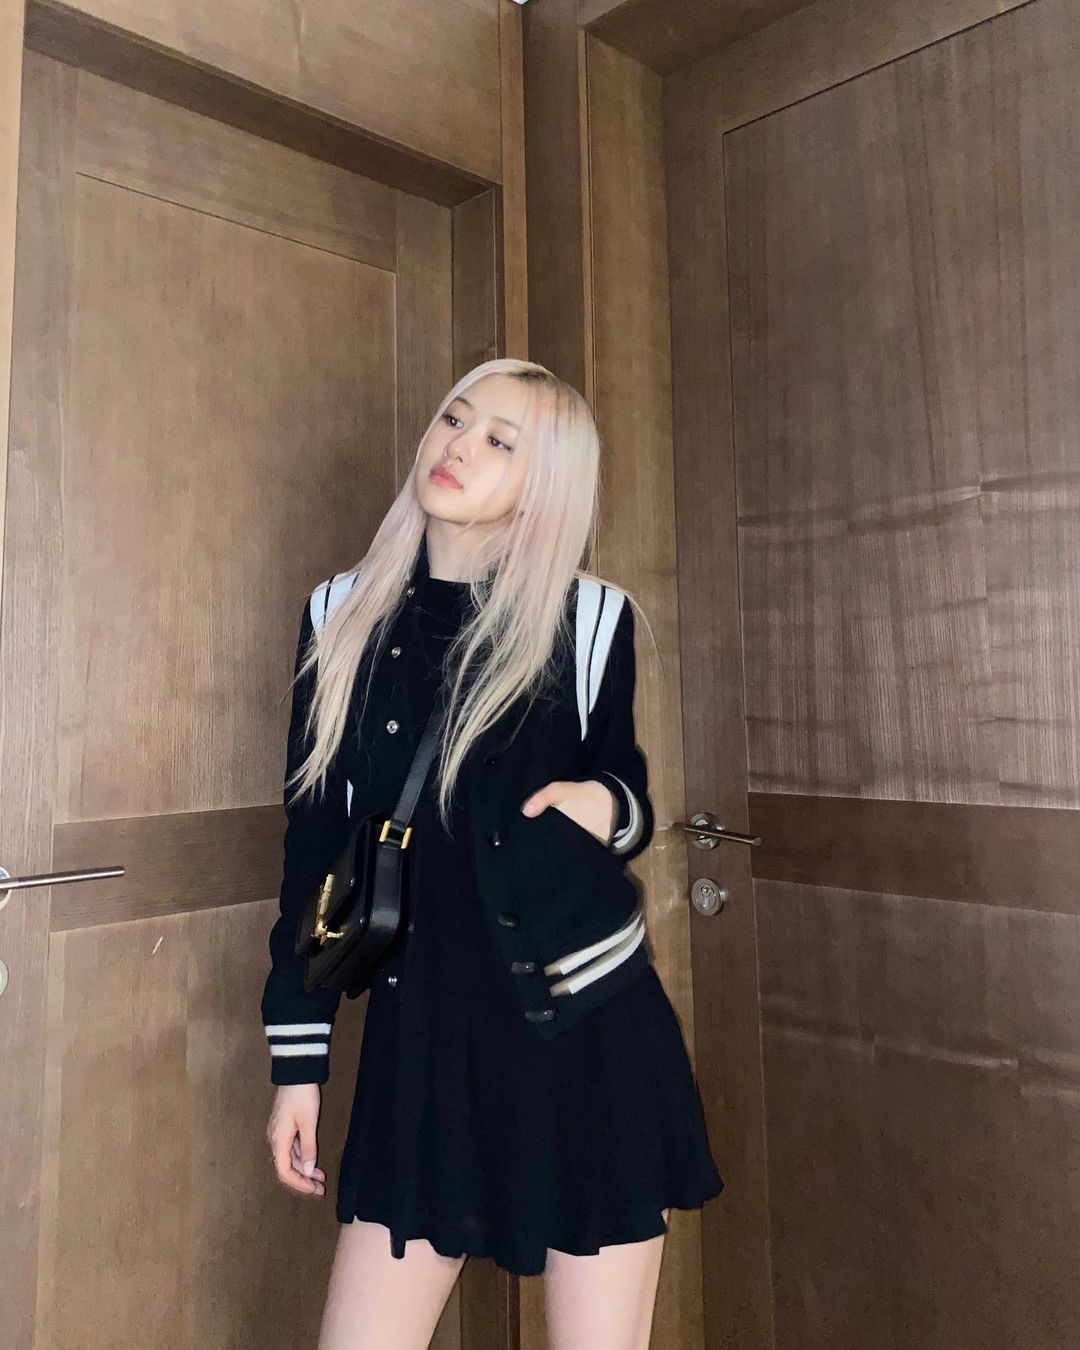 BLACKPINK Rosé in YSL